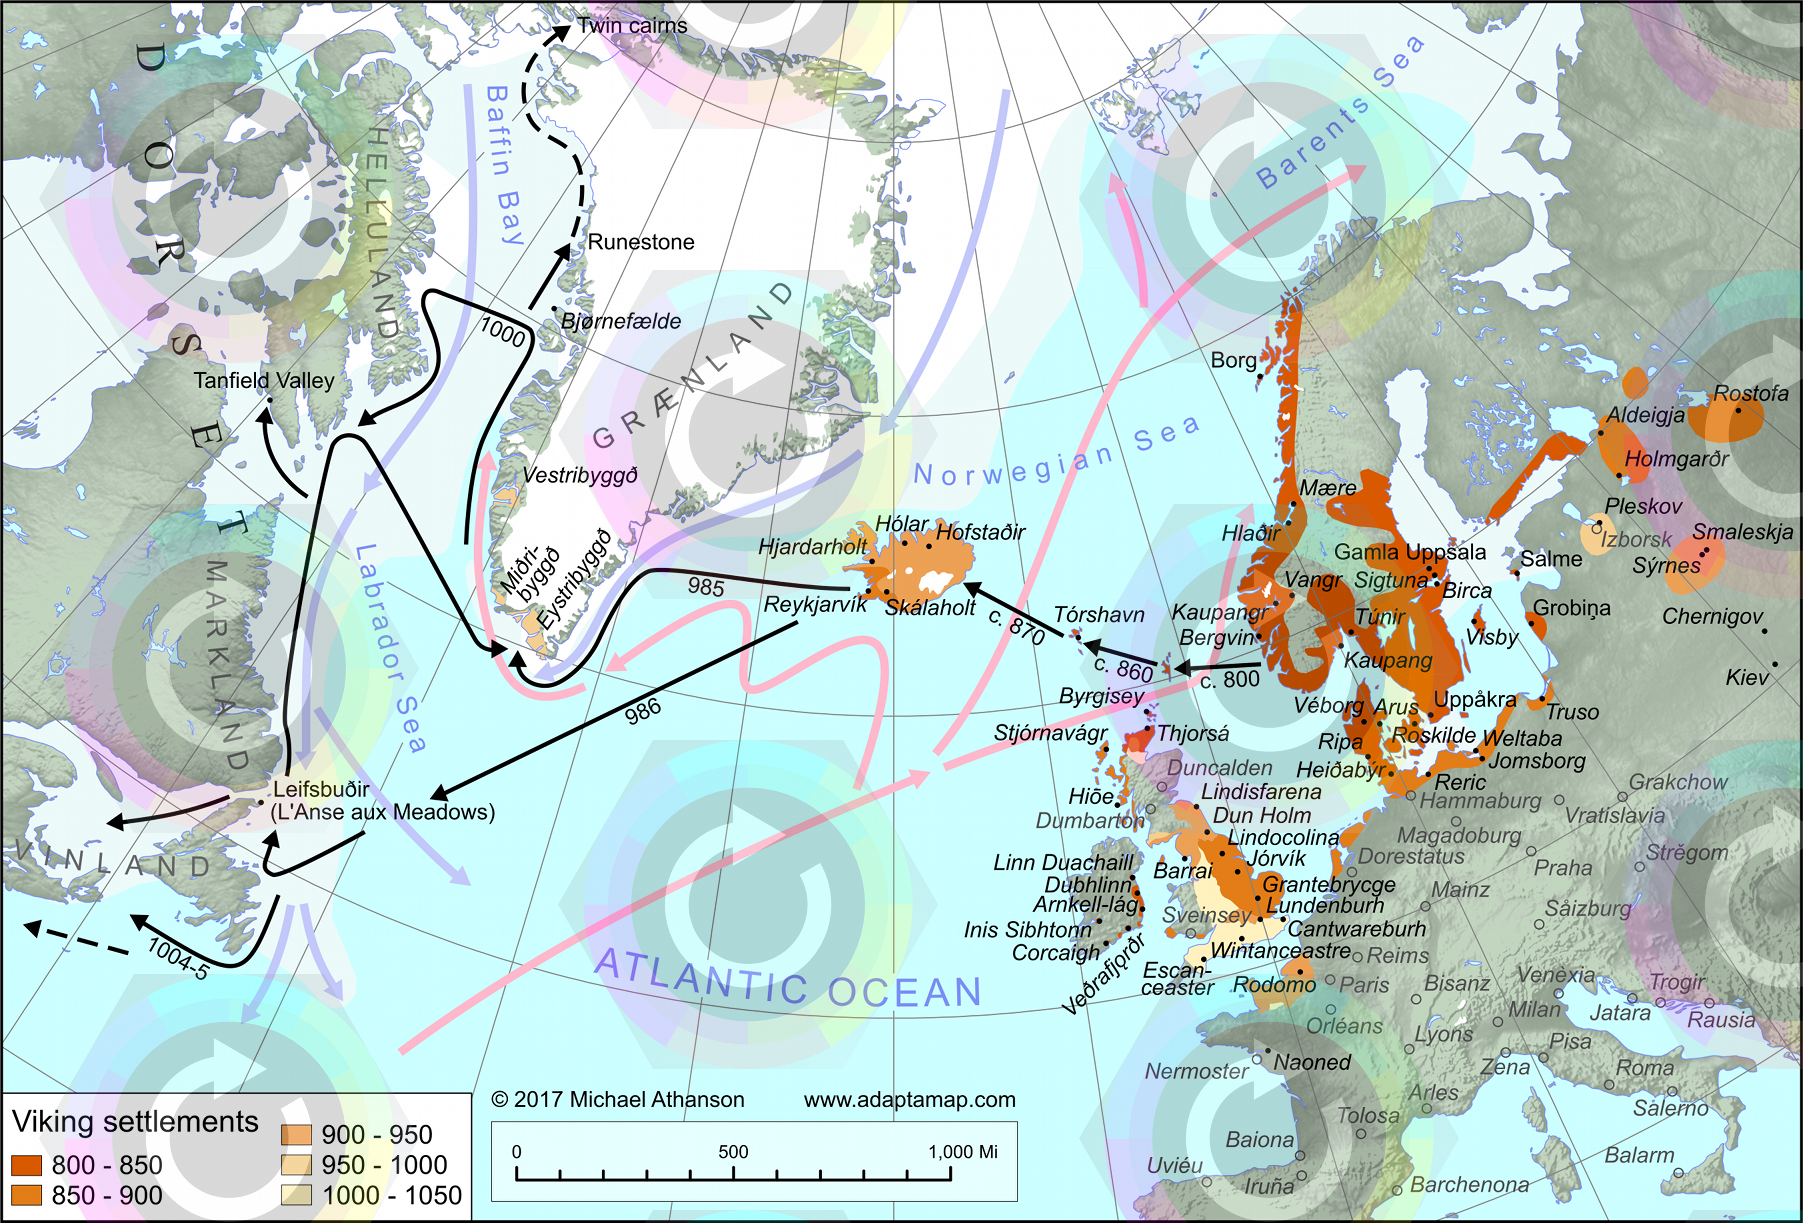 a map illustrating viking exploration and settlement throughout